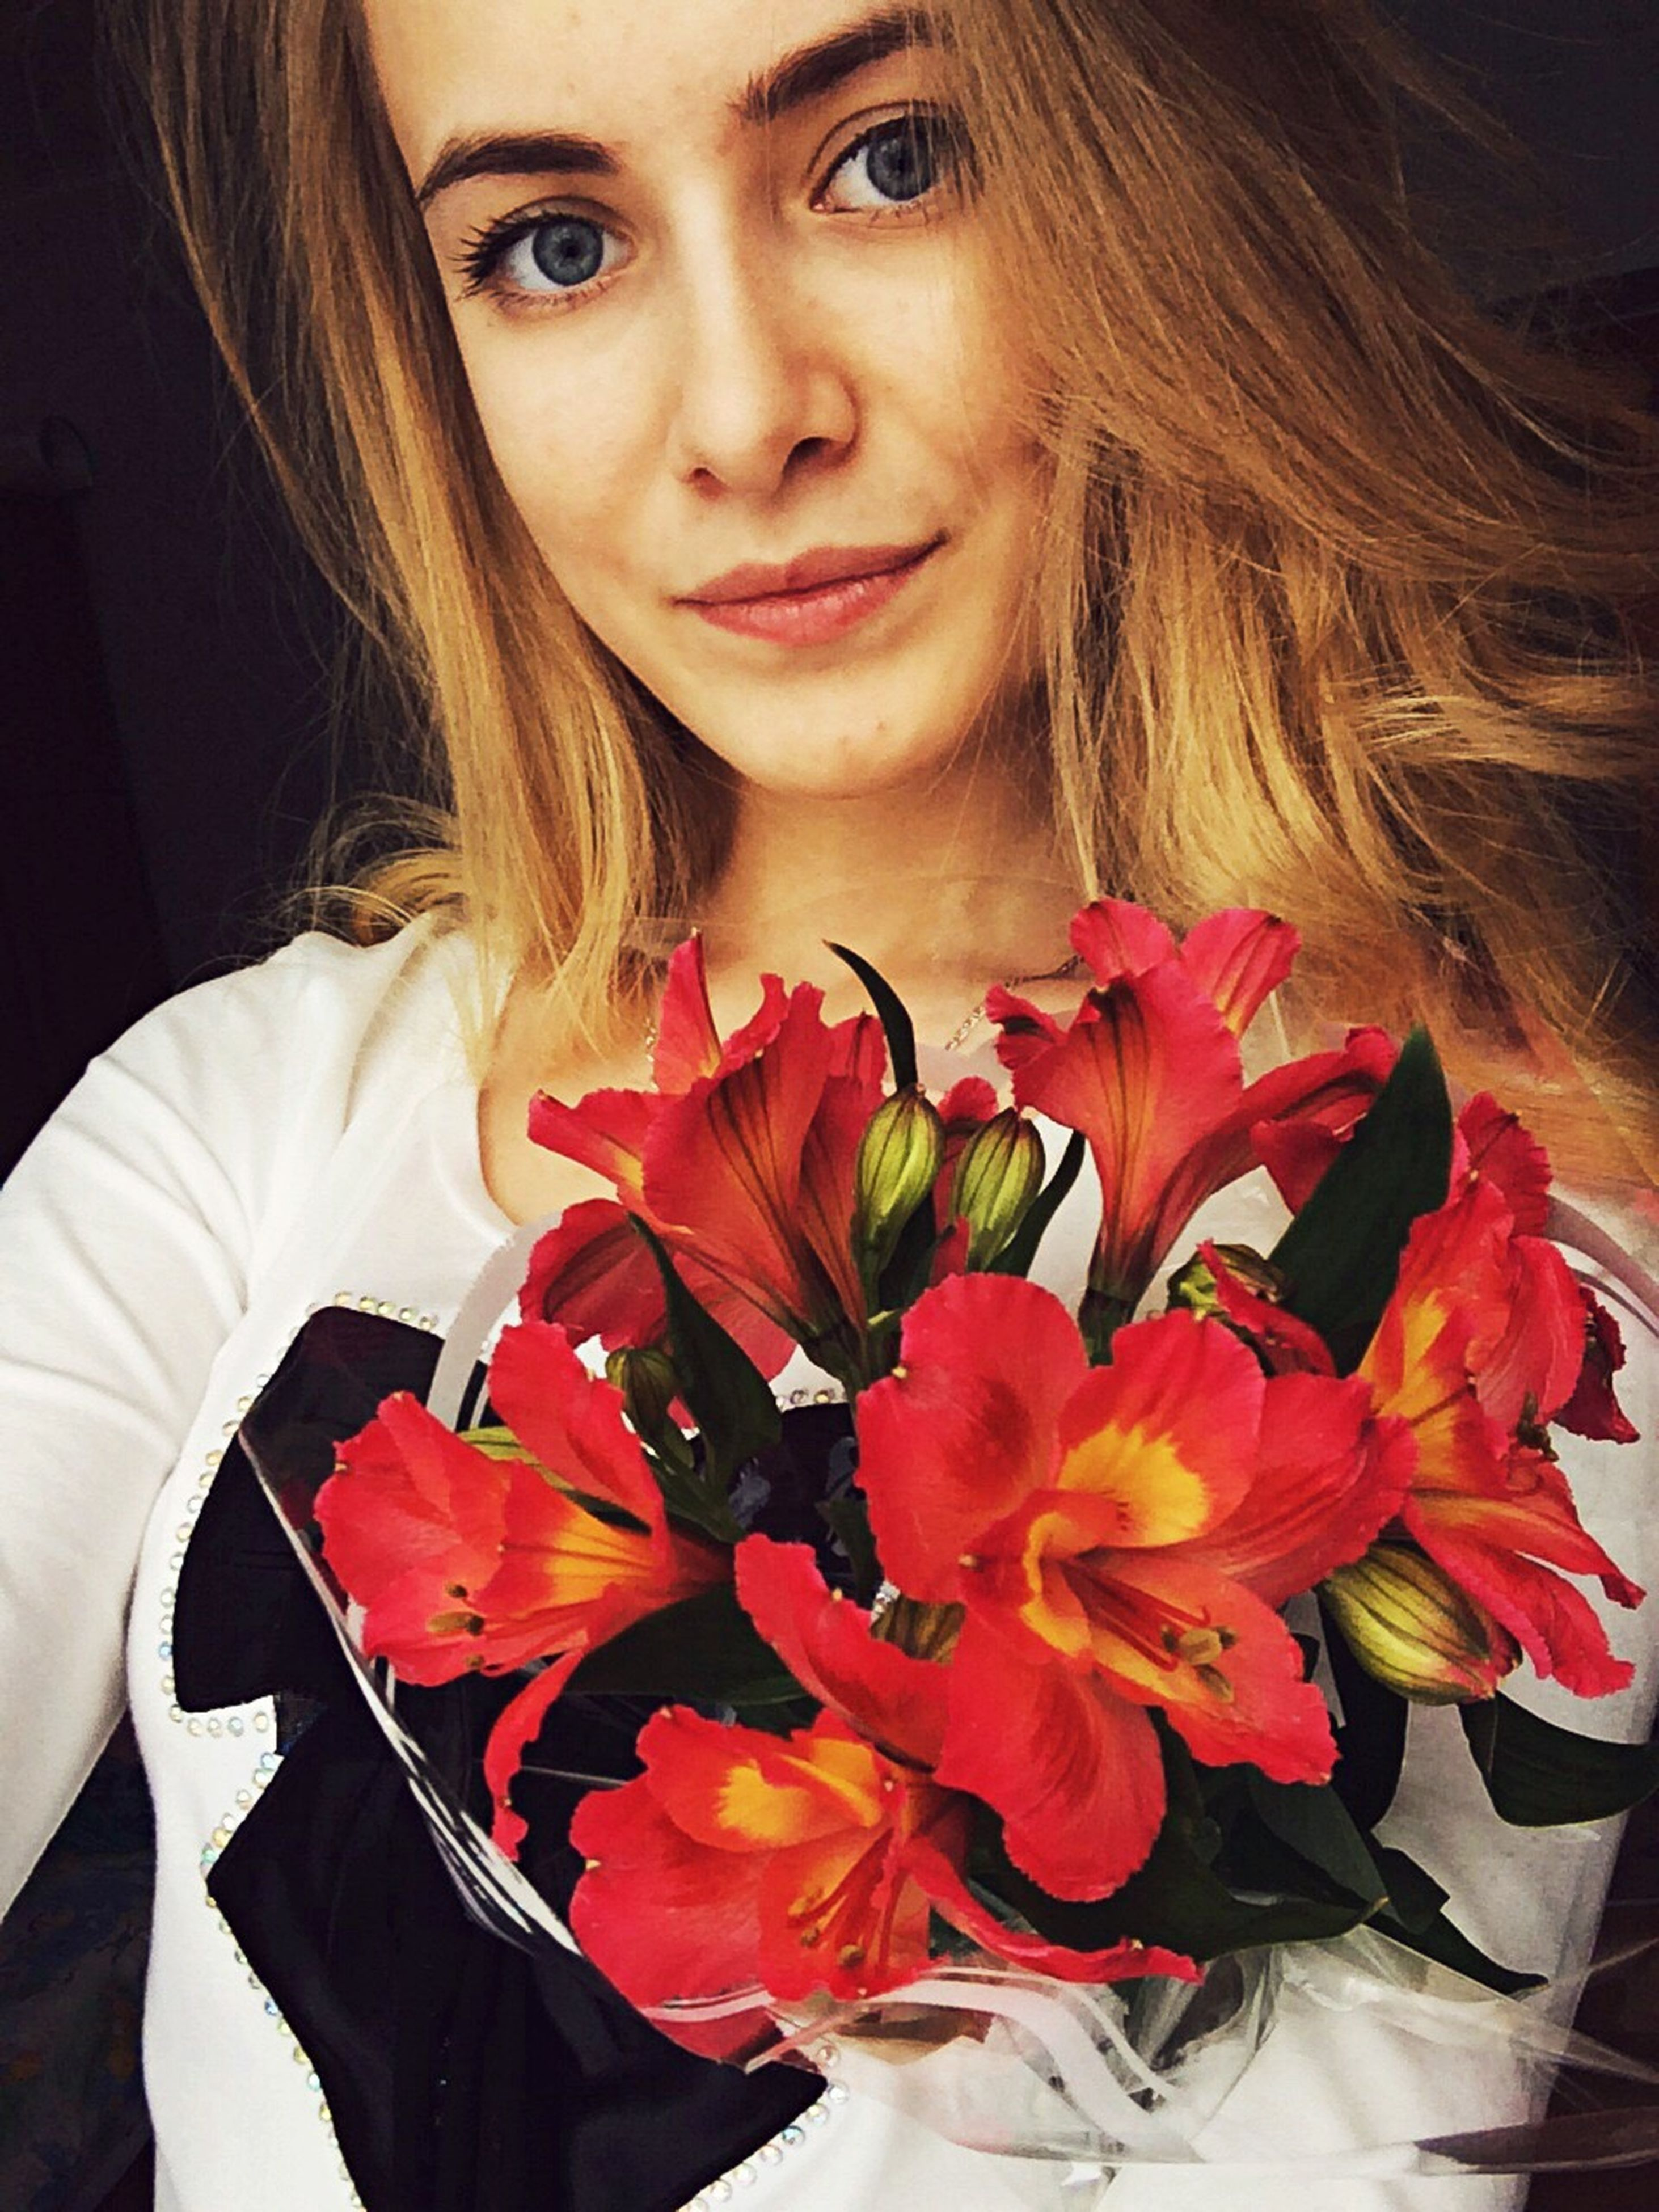 person, young women, lifestyles, portrait, looking at camera, front view, long hair, casual clothing, young adult, leisure activity, indoors, red, holding, smiling, flower, waist up, close-up